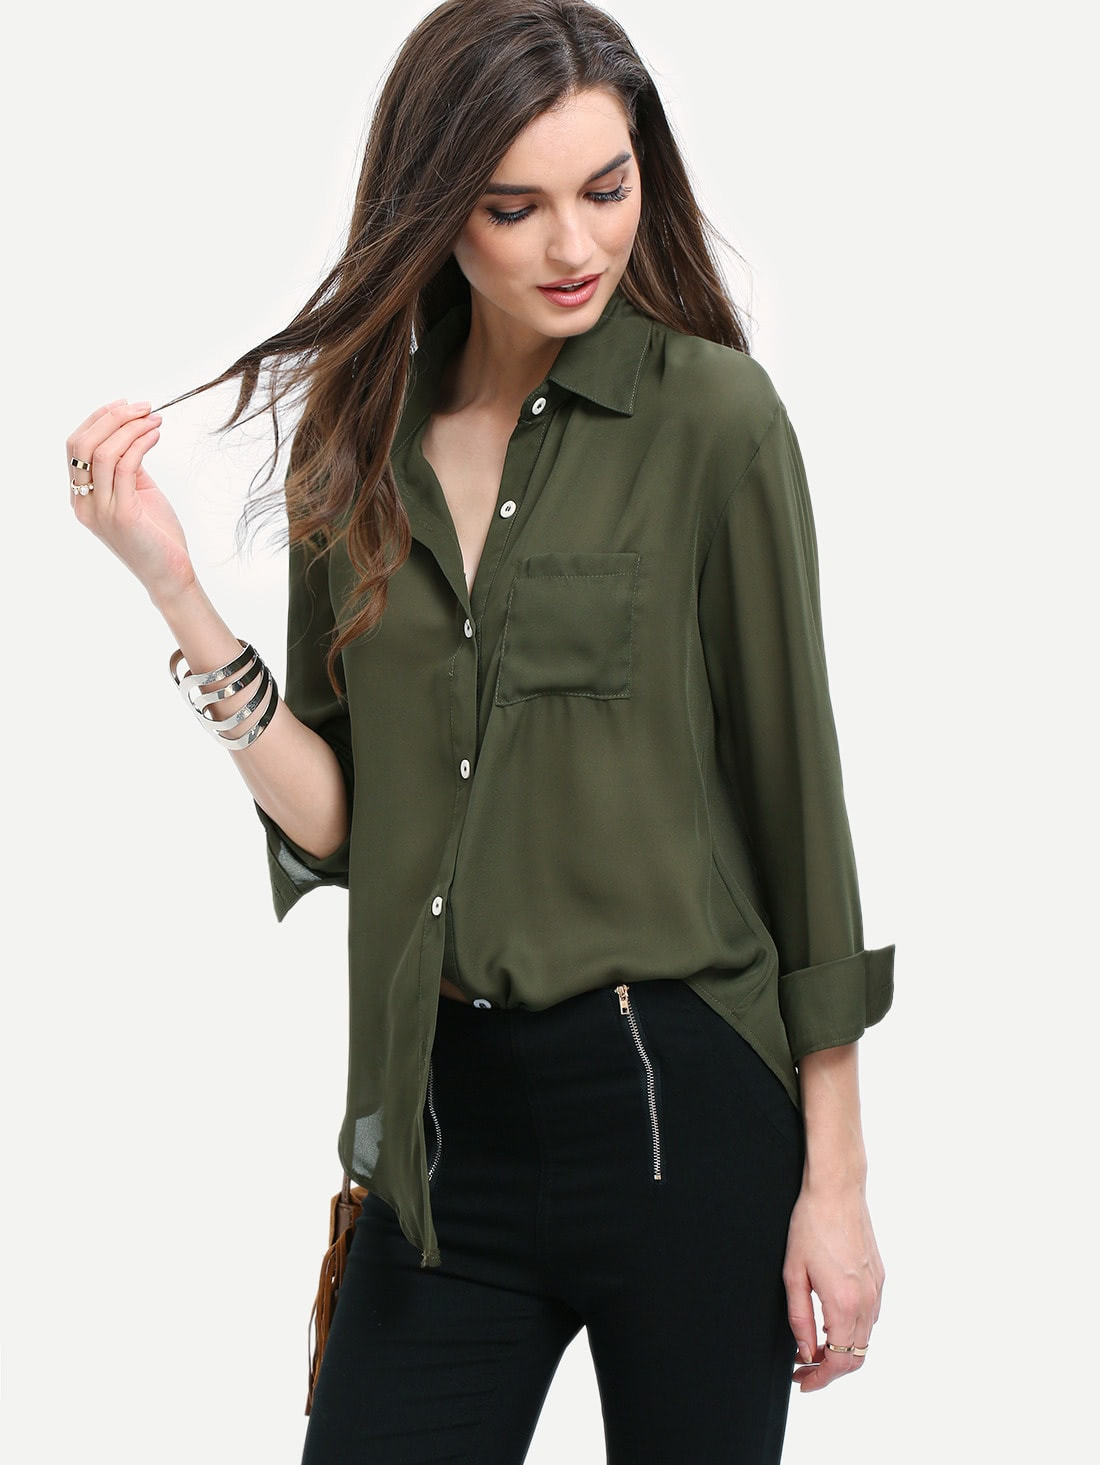 Pocket Front Button Up Blouse inc new bright white women s size small s tie front button up blouse $59 461